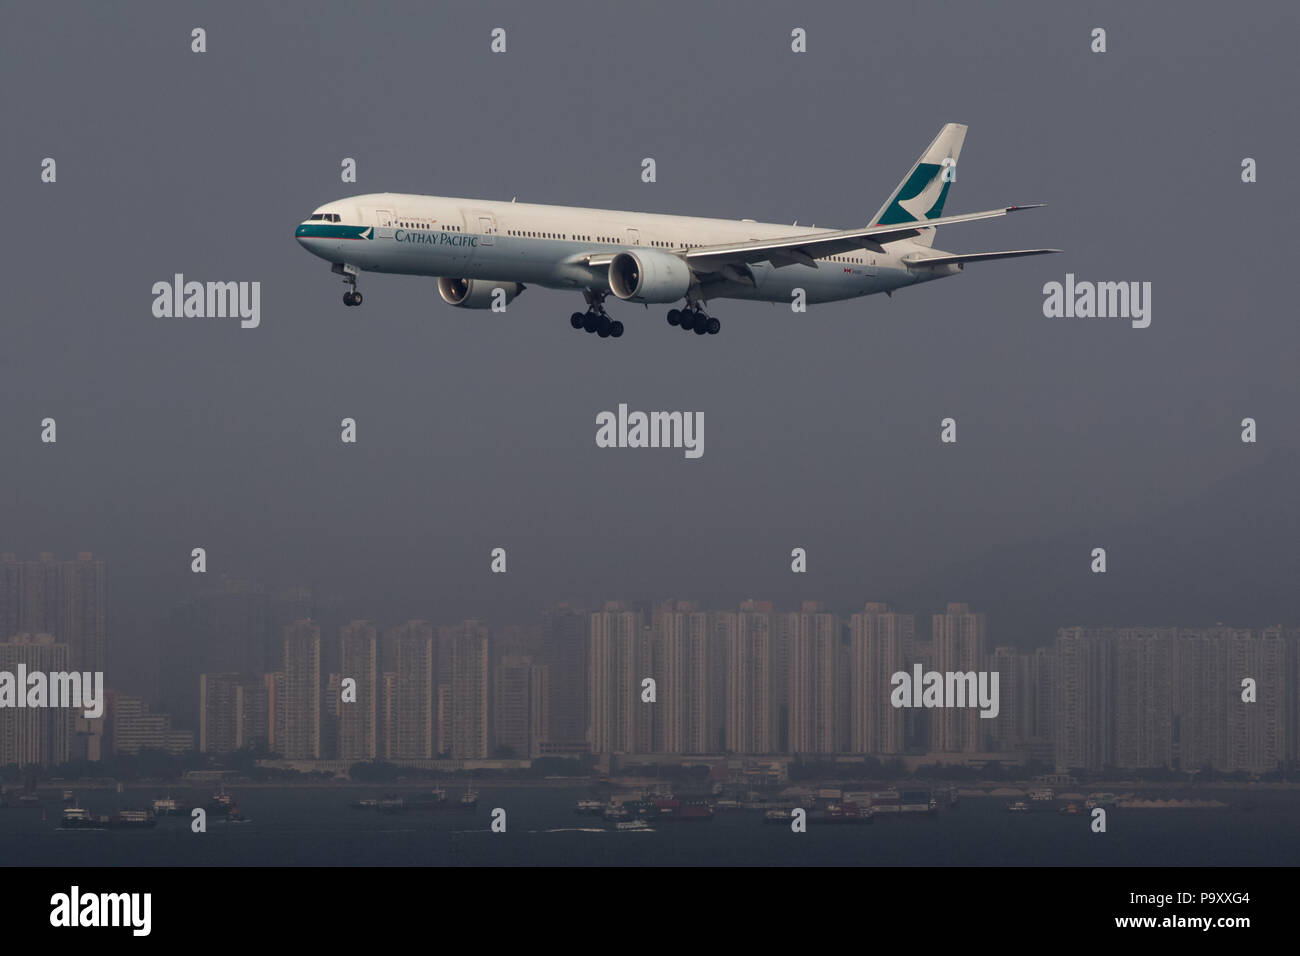 The Boeing 777-300ER widebody civil jet airplane of Cathay Pacific pictured approaching Chek Lap Kok airport, Hong Kong, China Stock Photo